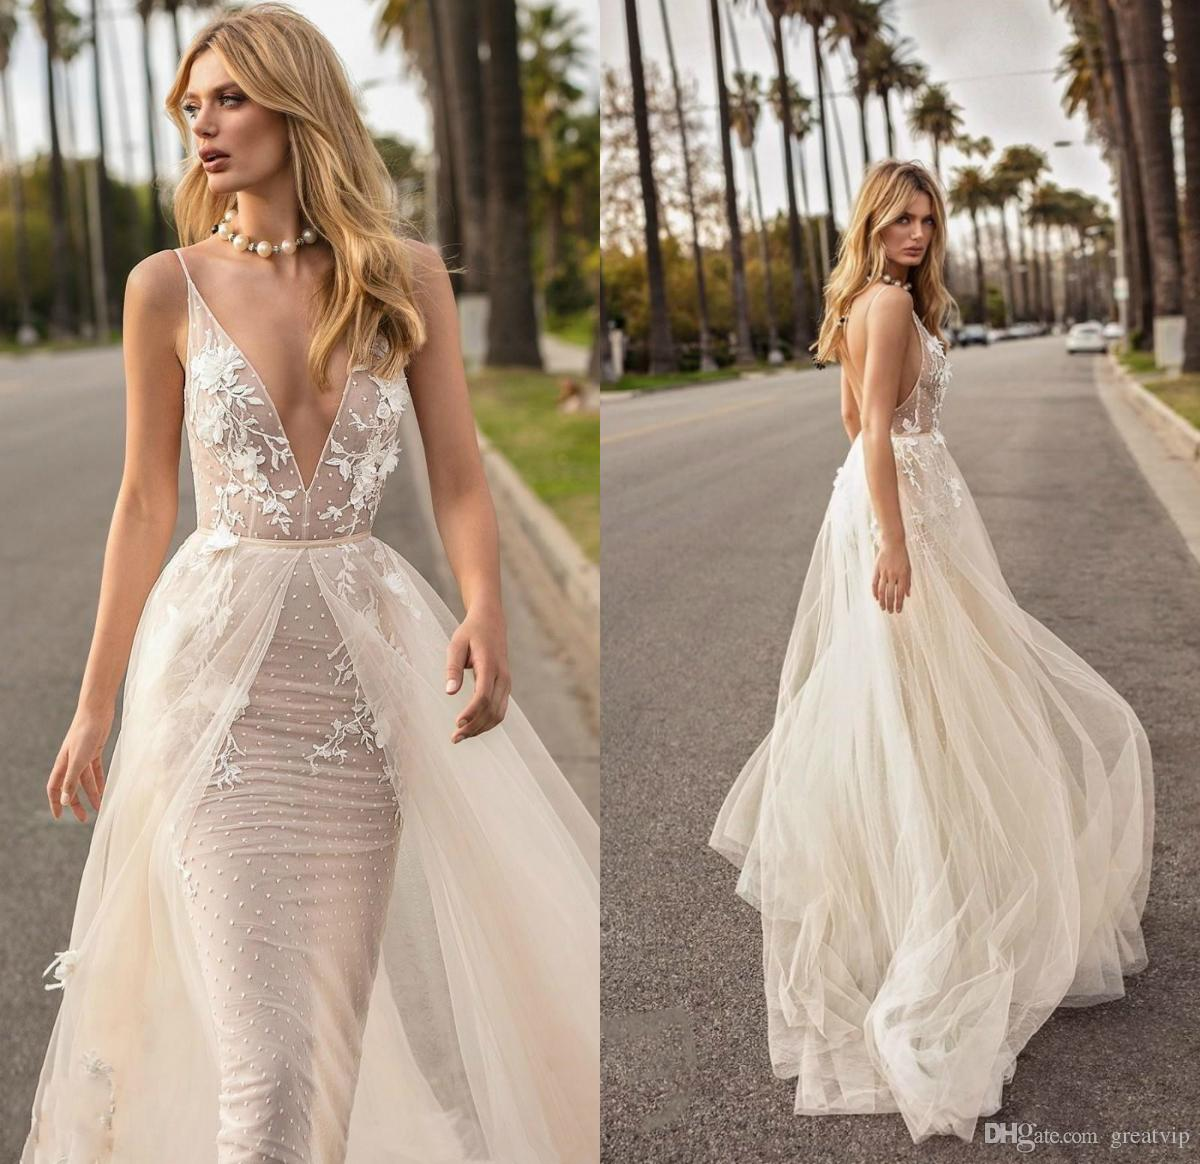 Muse By Berta 2019 Mermaid Overskirts Sexy Wedding Dresses V Neck Backless Lace Bridal Gowns Boho Beach Wedding Dress Robe De Mariee